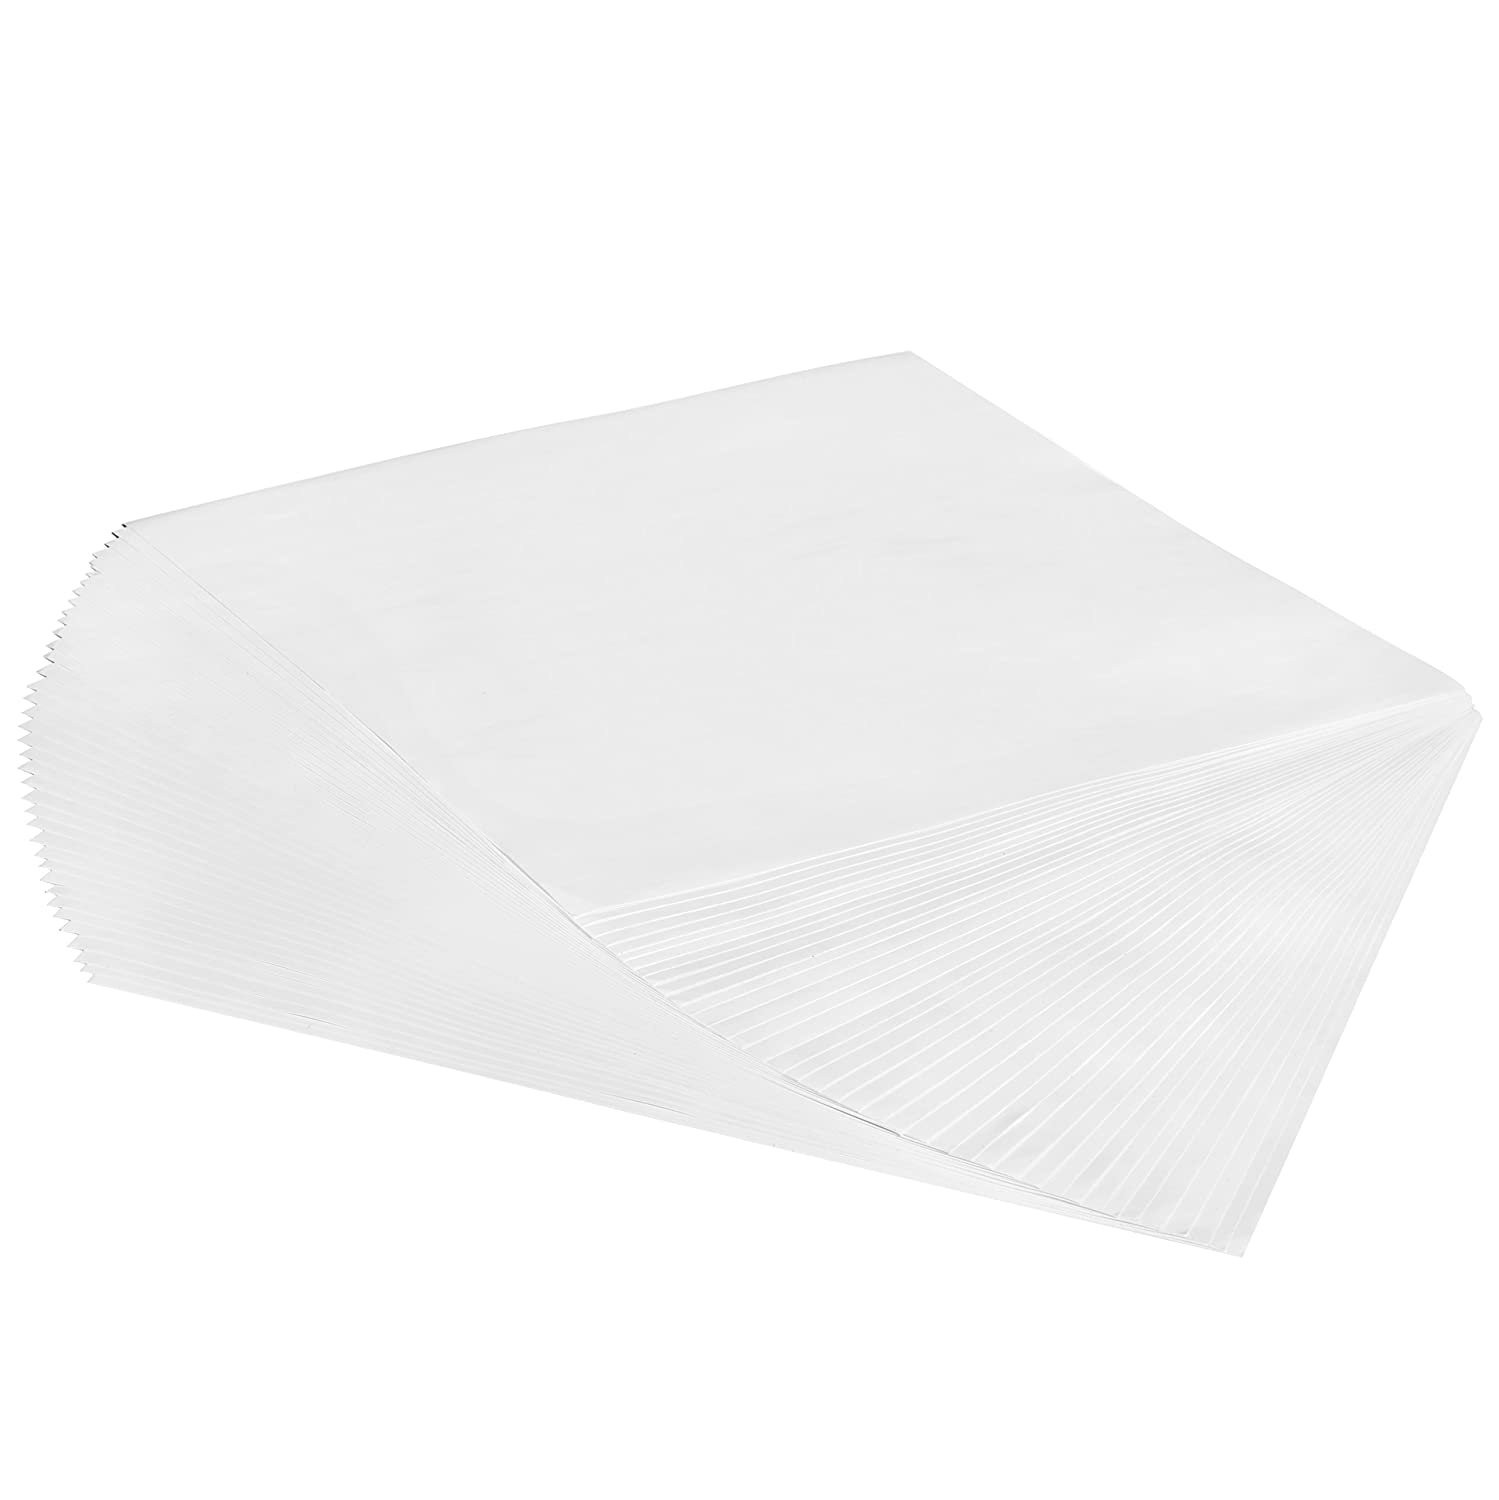 Permanent Matte White Vinyl Sheets Better Than Vinyl Rolls - EZ Craft USA - 12 X 12 - 40 Matte Adhesive Backed Sheets Work with Cricut and Other Cutters Angelo Rosado 4336976968